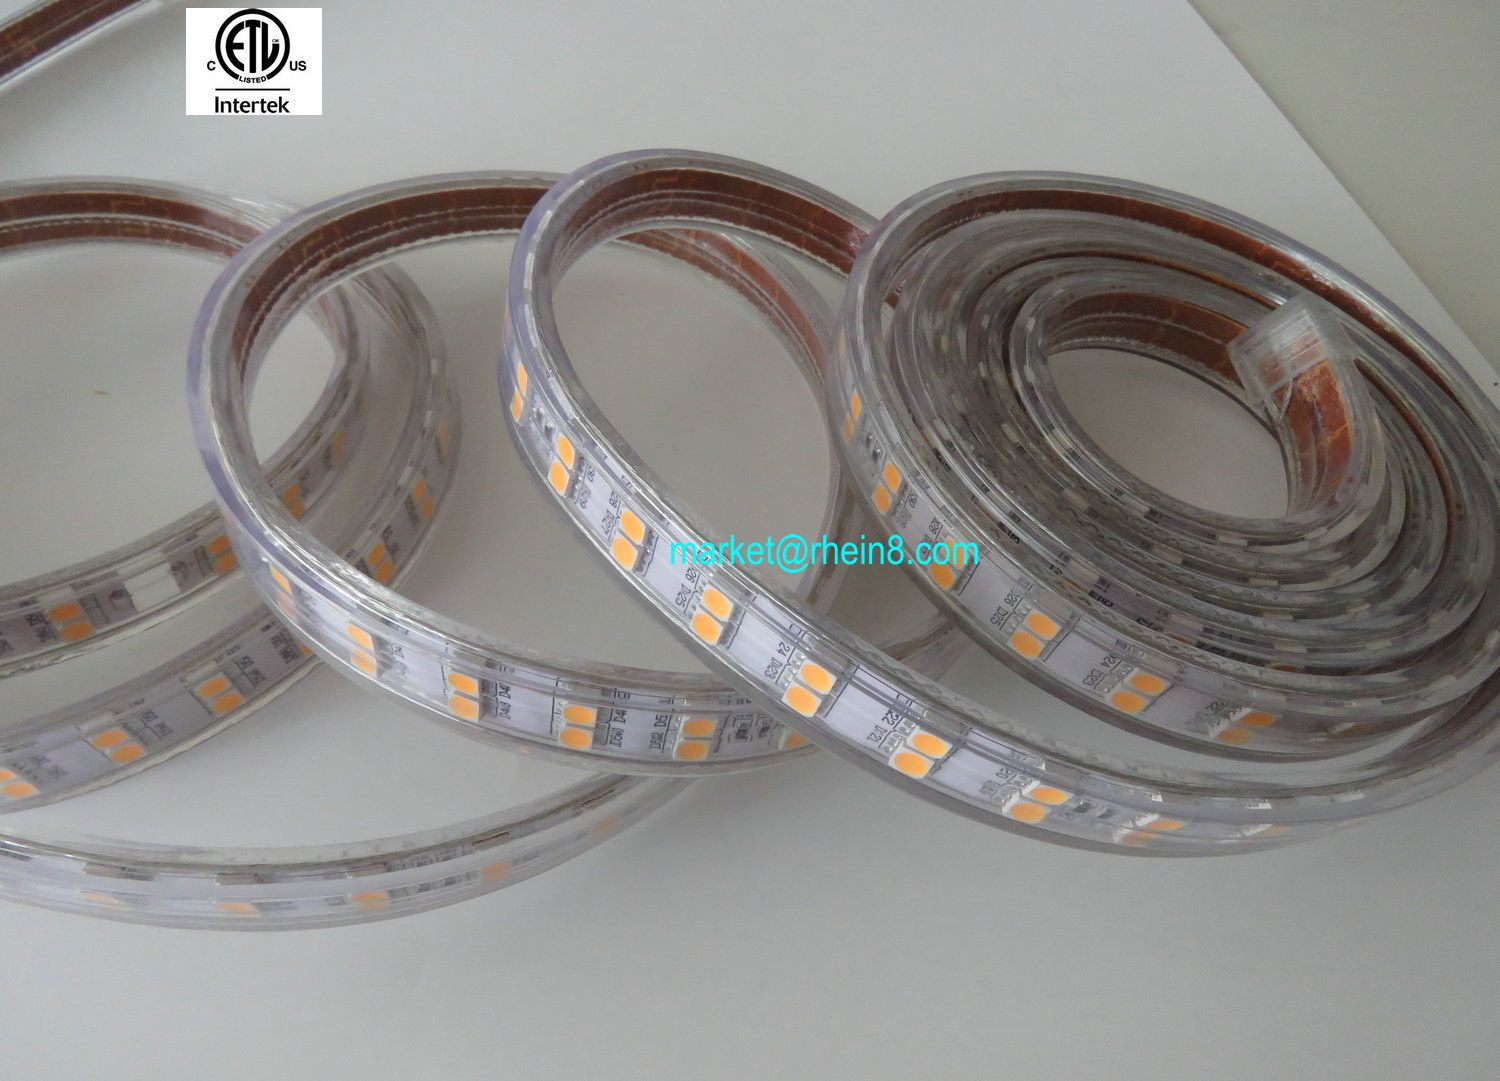 Advantage Of Our Newest Strip Lights 1 Etl Listed 2 Ip67 Can Be Used Indoor And Outdoor Widely Use Range 3 Led Strip Lighting Strip Lighting Led Panel Light